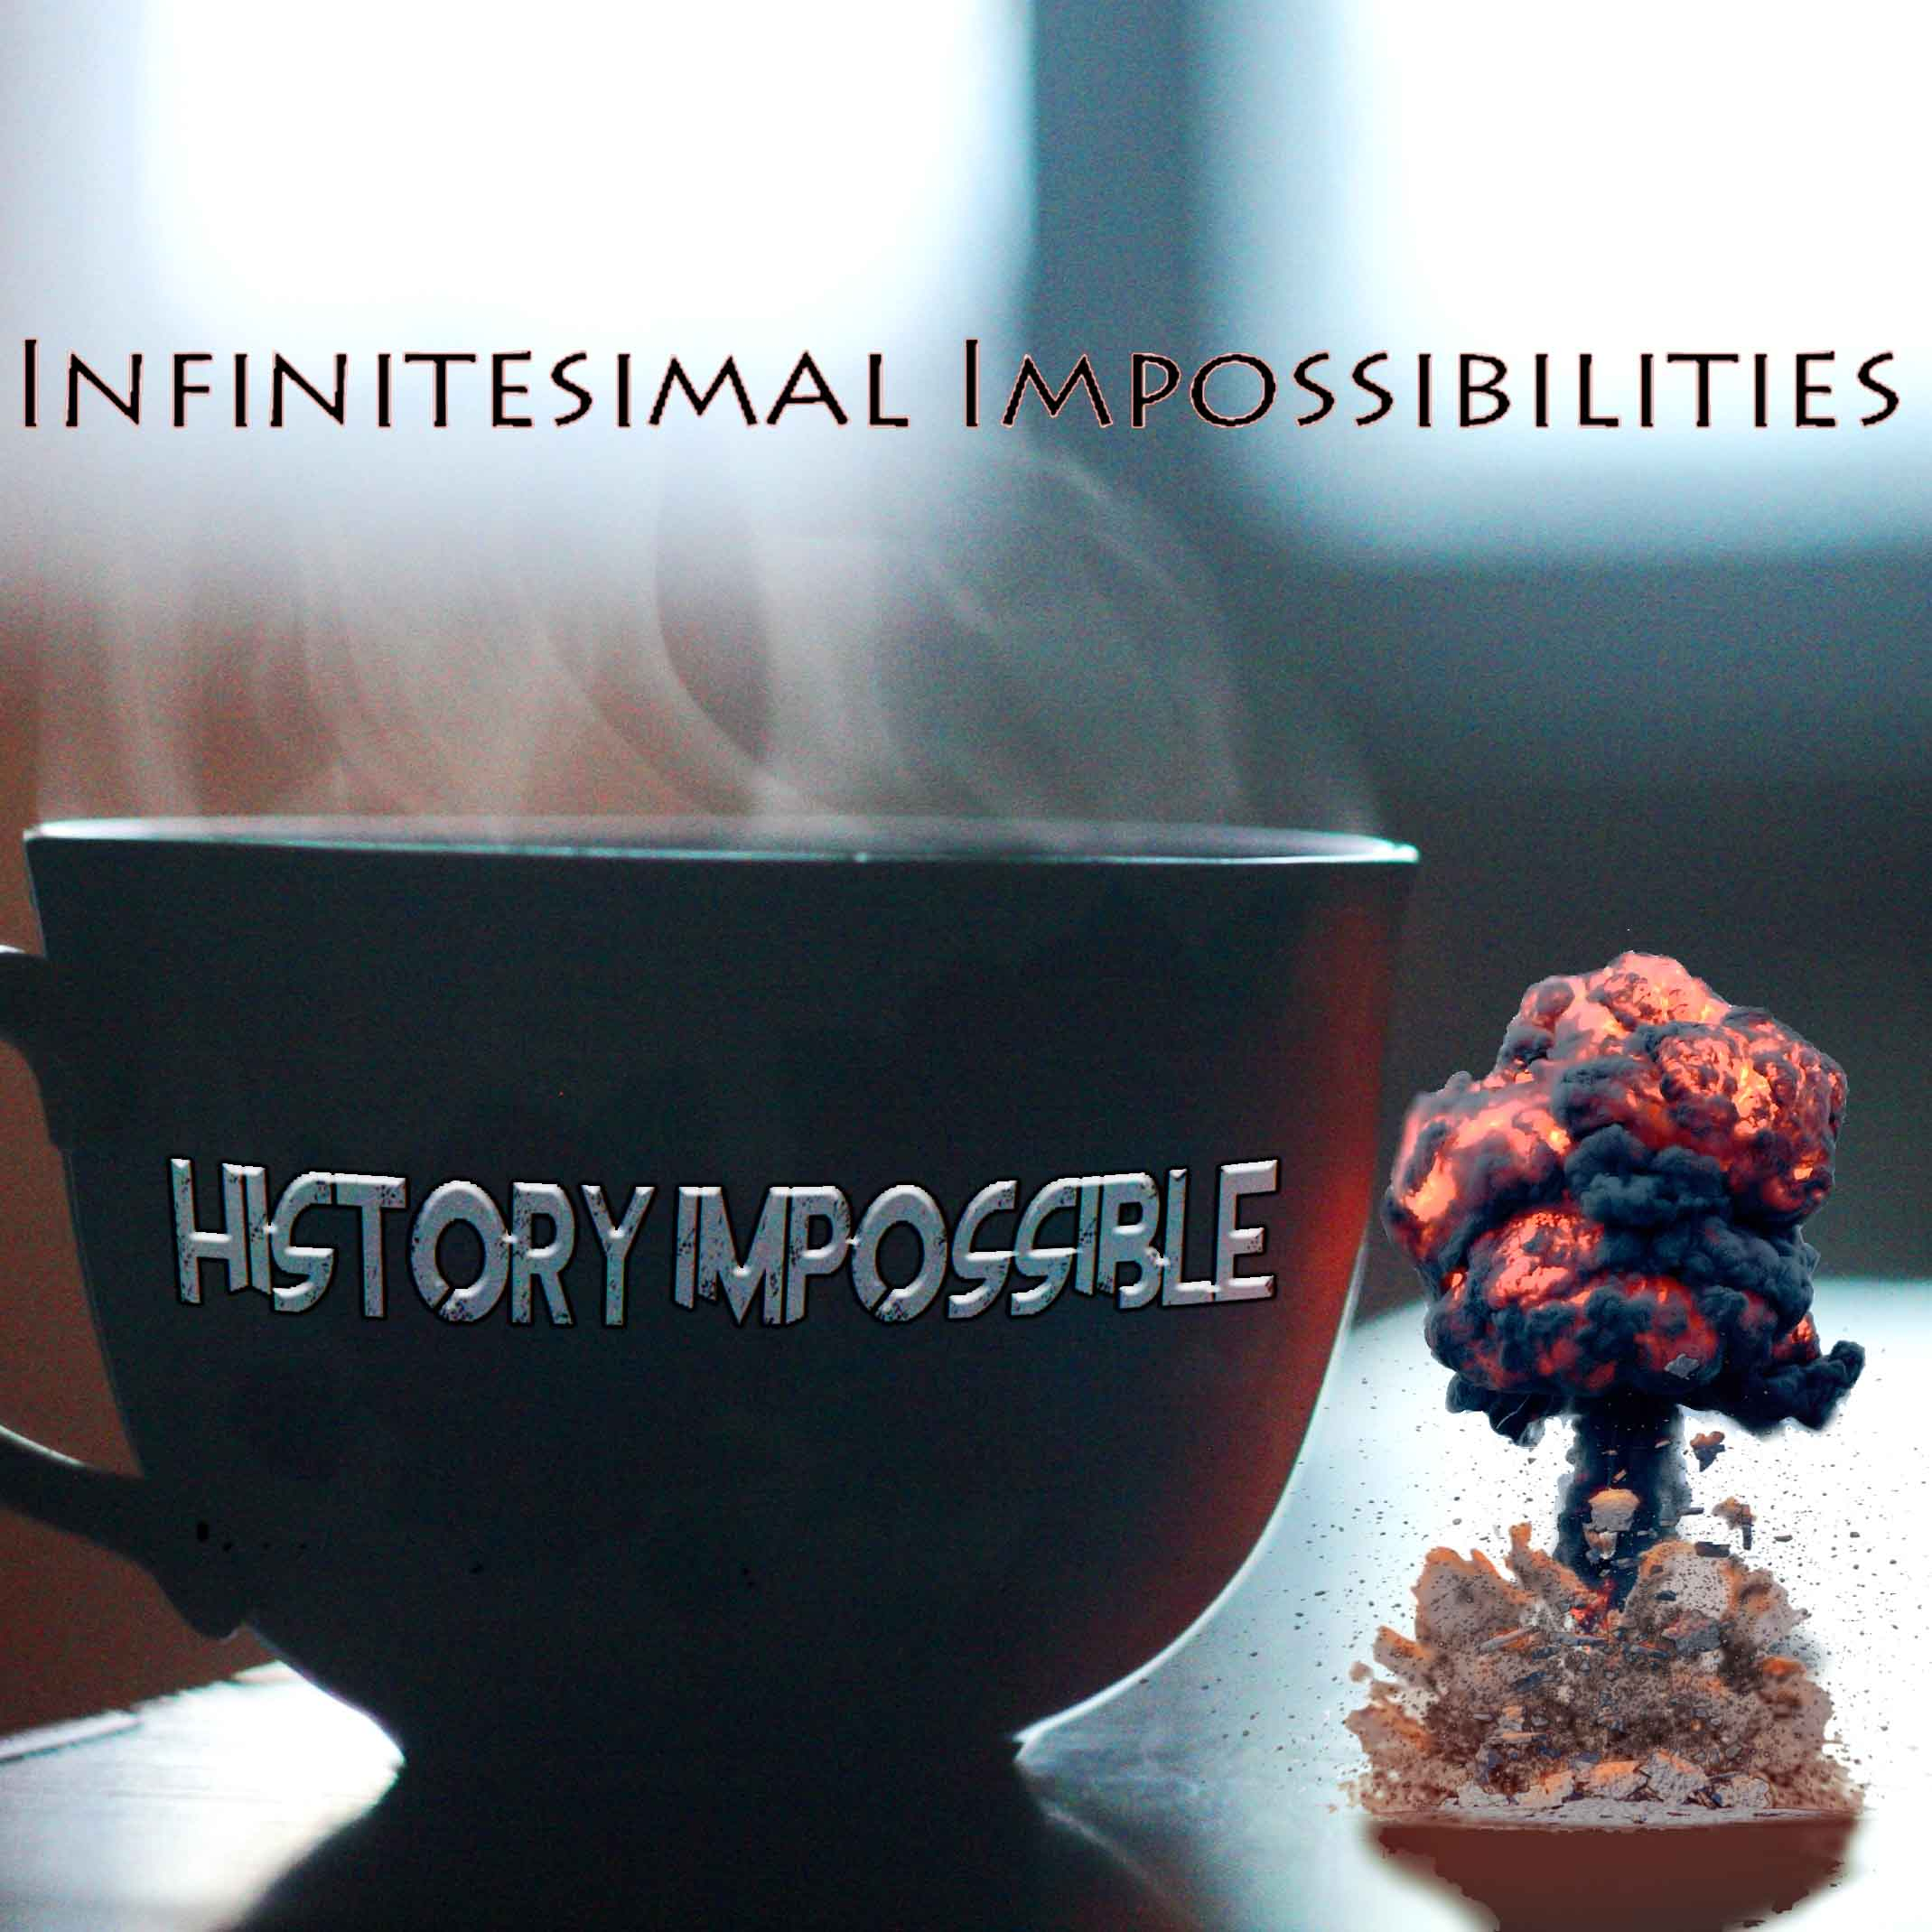 Infinitesimal Impossibilities 02: The Mad Madame of New Orleans